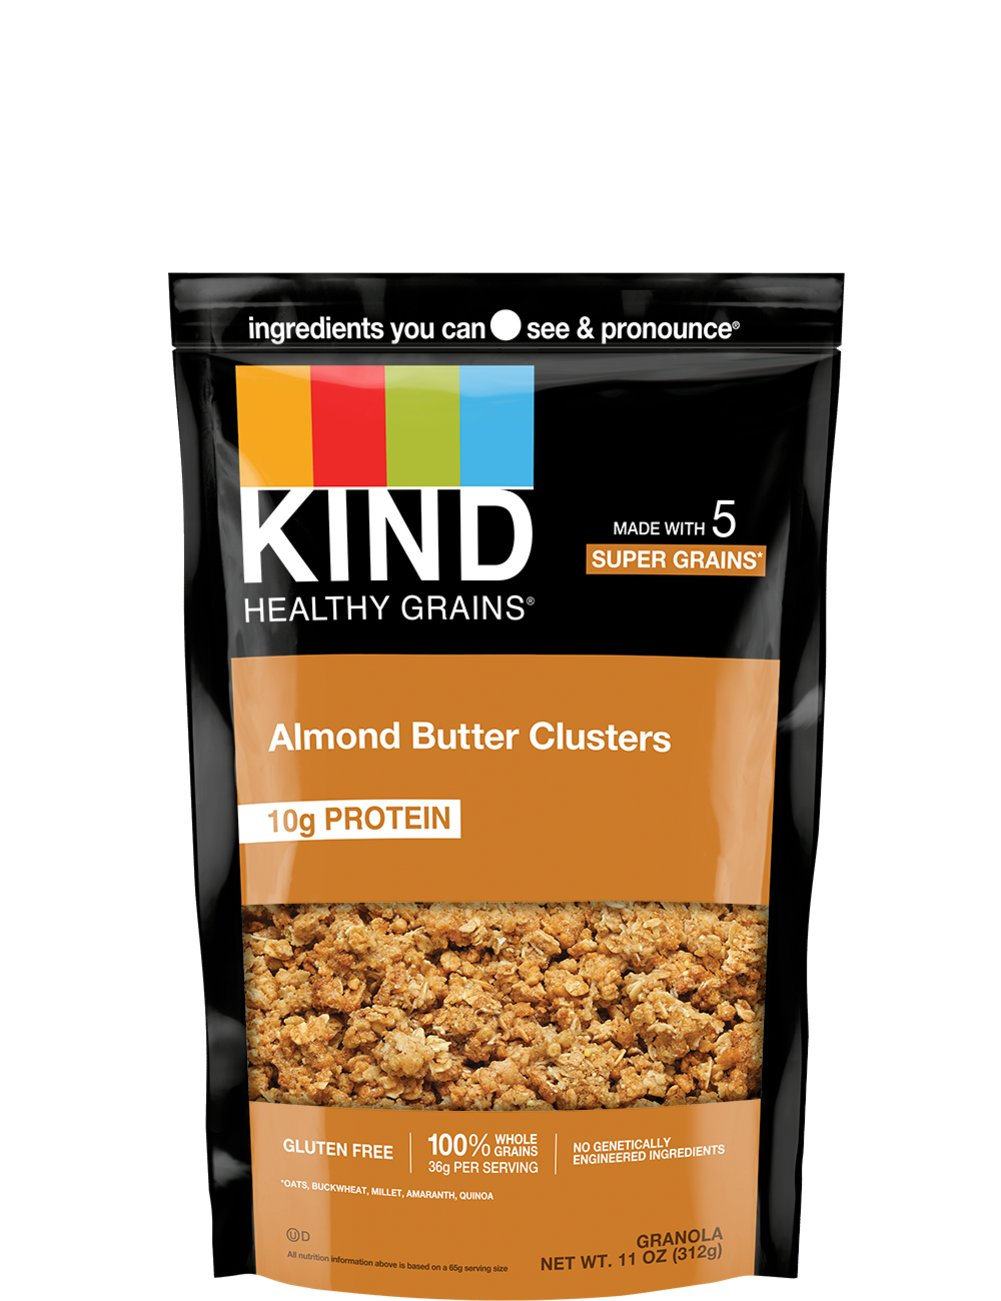 KIND Almond Butter Granola Clusters + Protein Thumbnail Alternate Bottle View